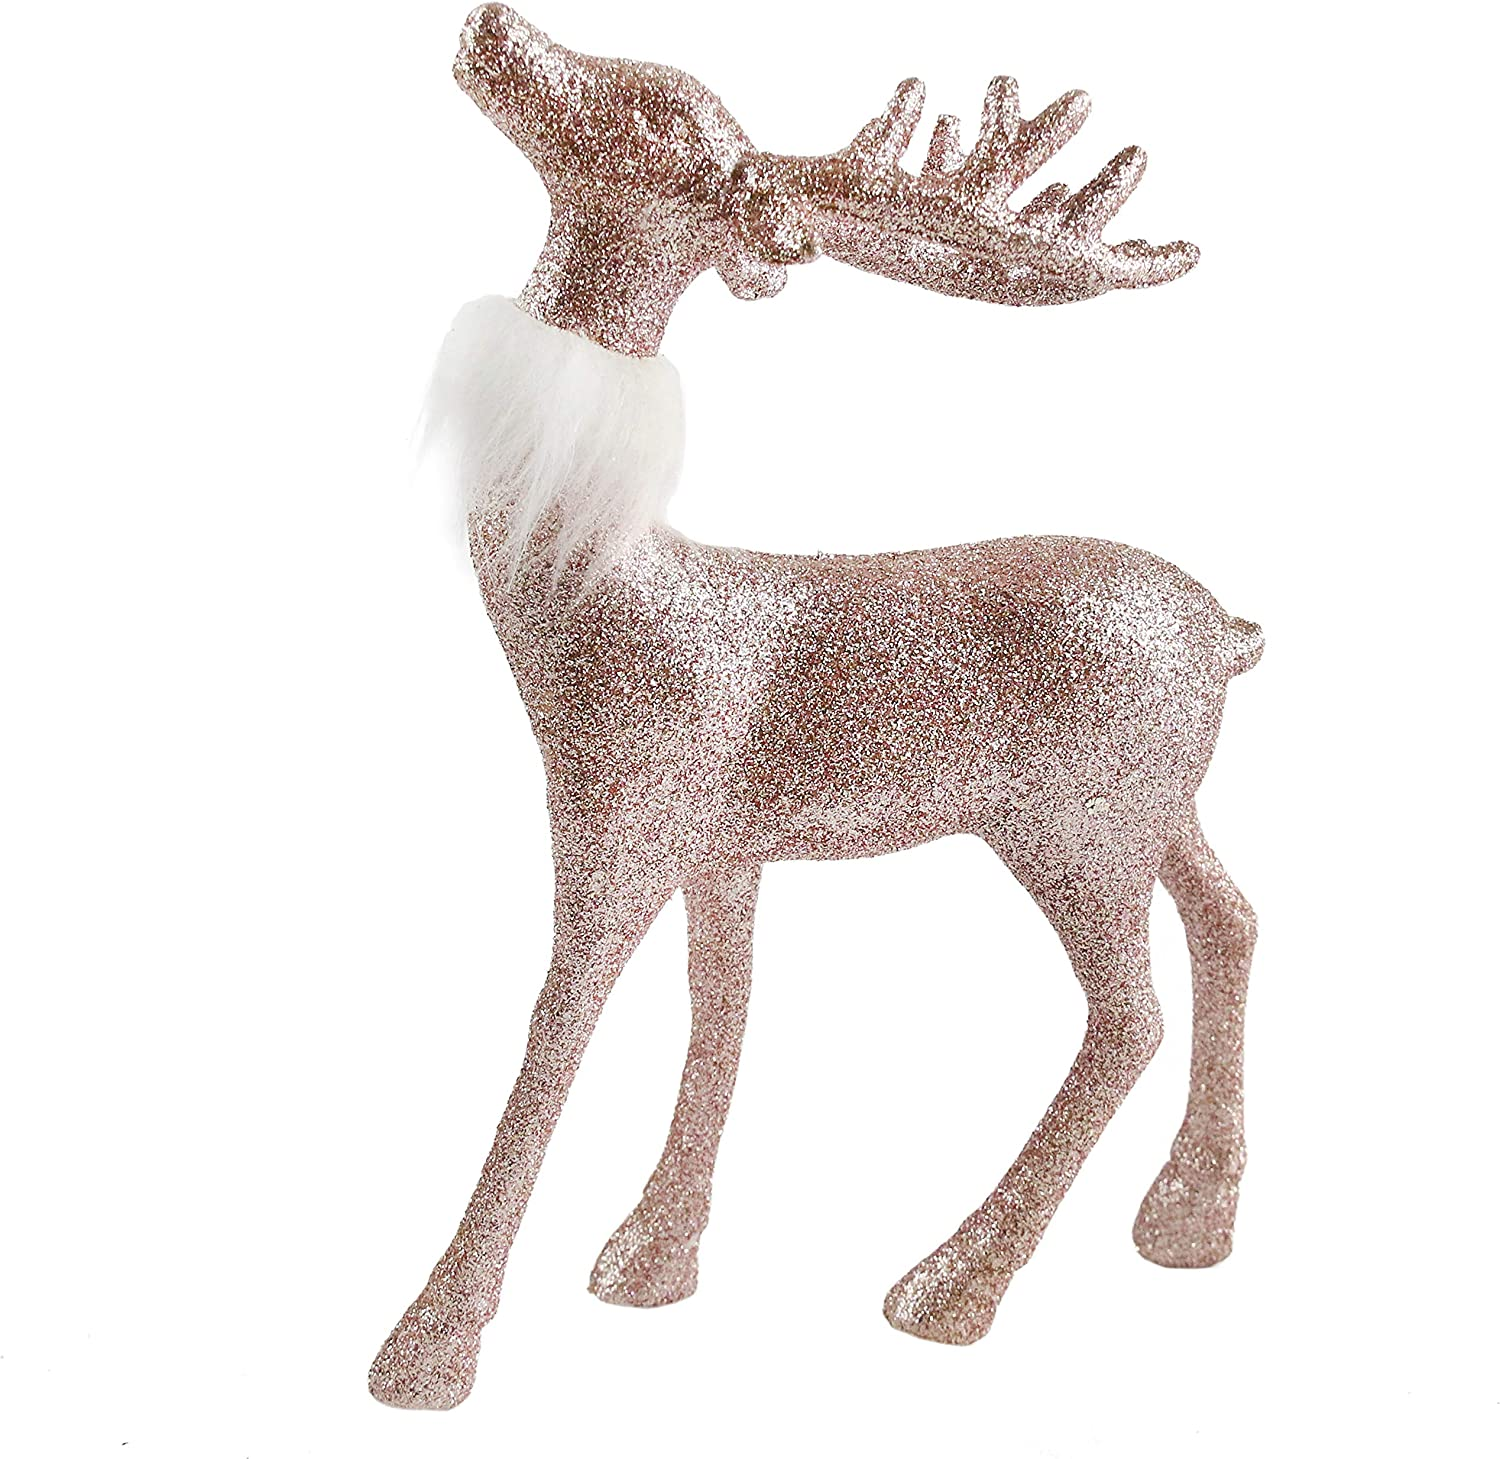 Athoinsu 9'' Christmas Reindeer Figurine Table Desk Decorations Glittering Xmas Holiday Party Supply, Pink (Plastic)